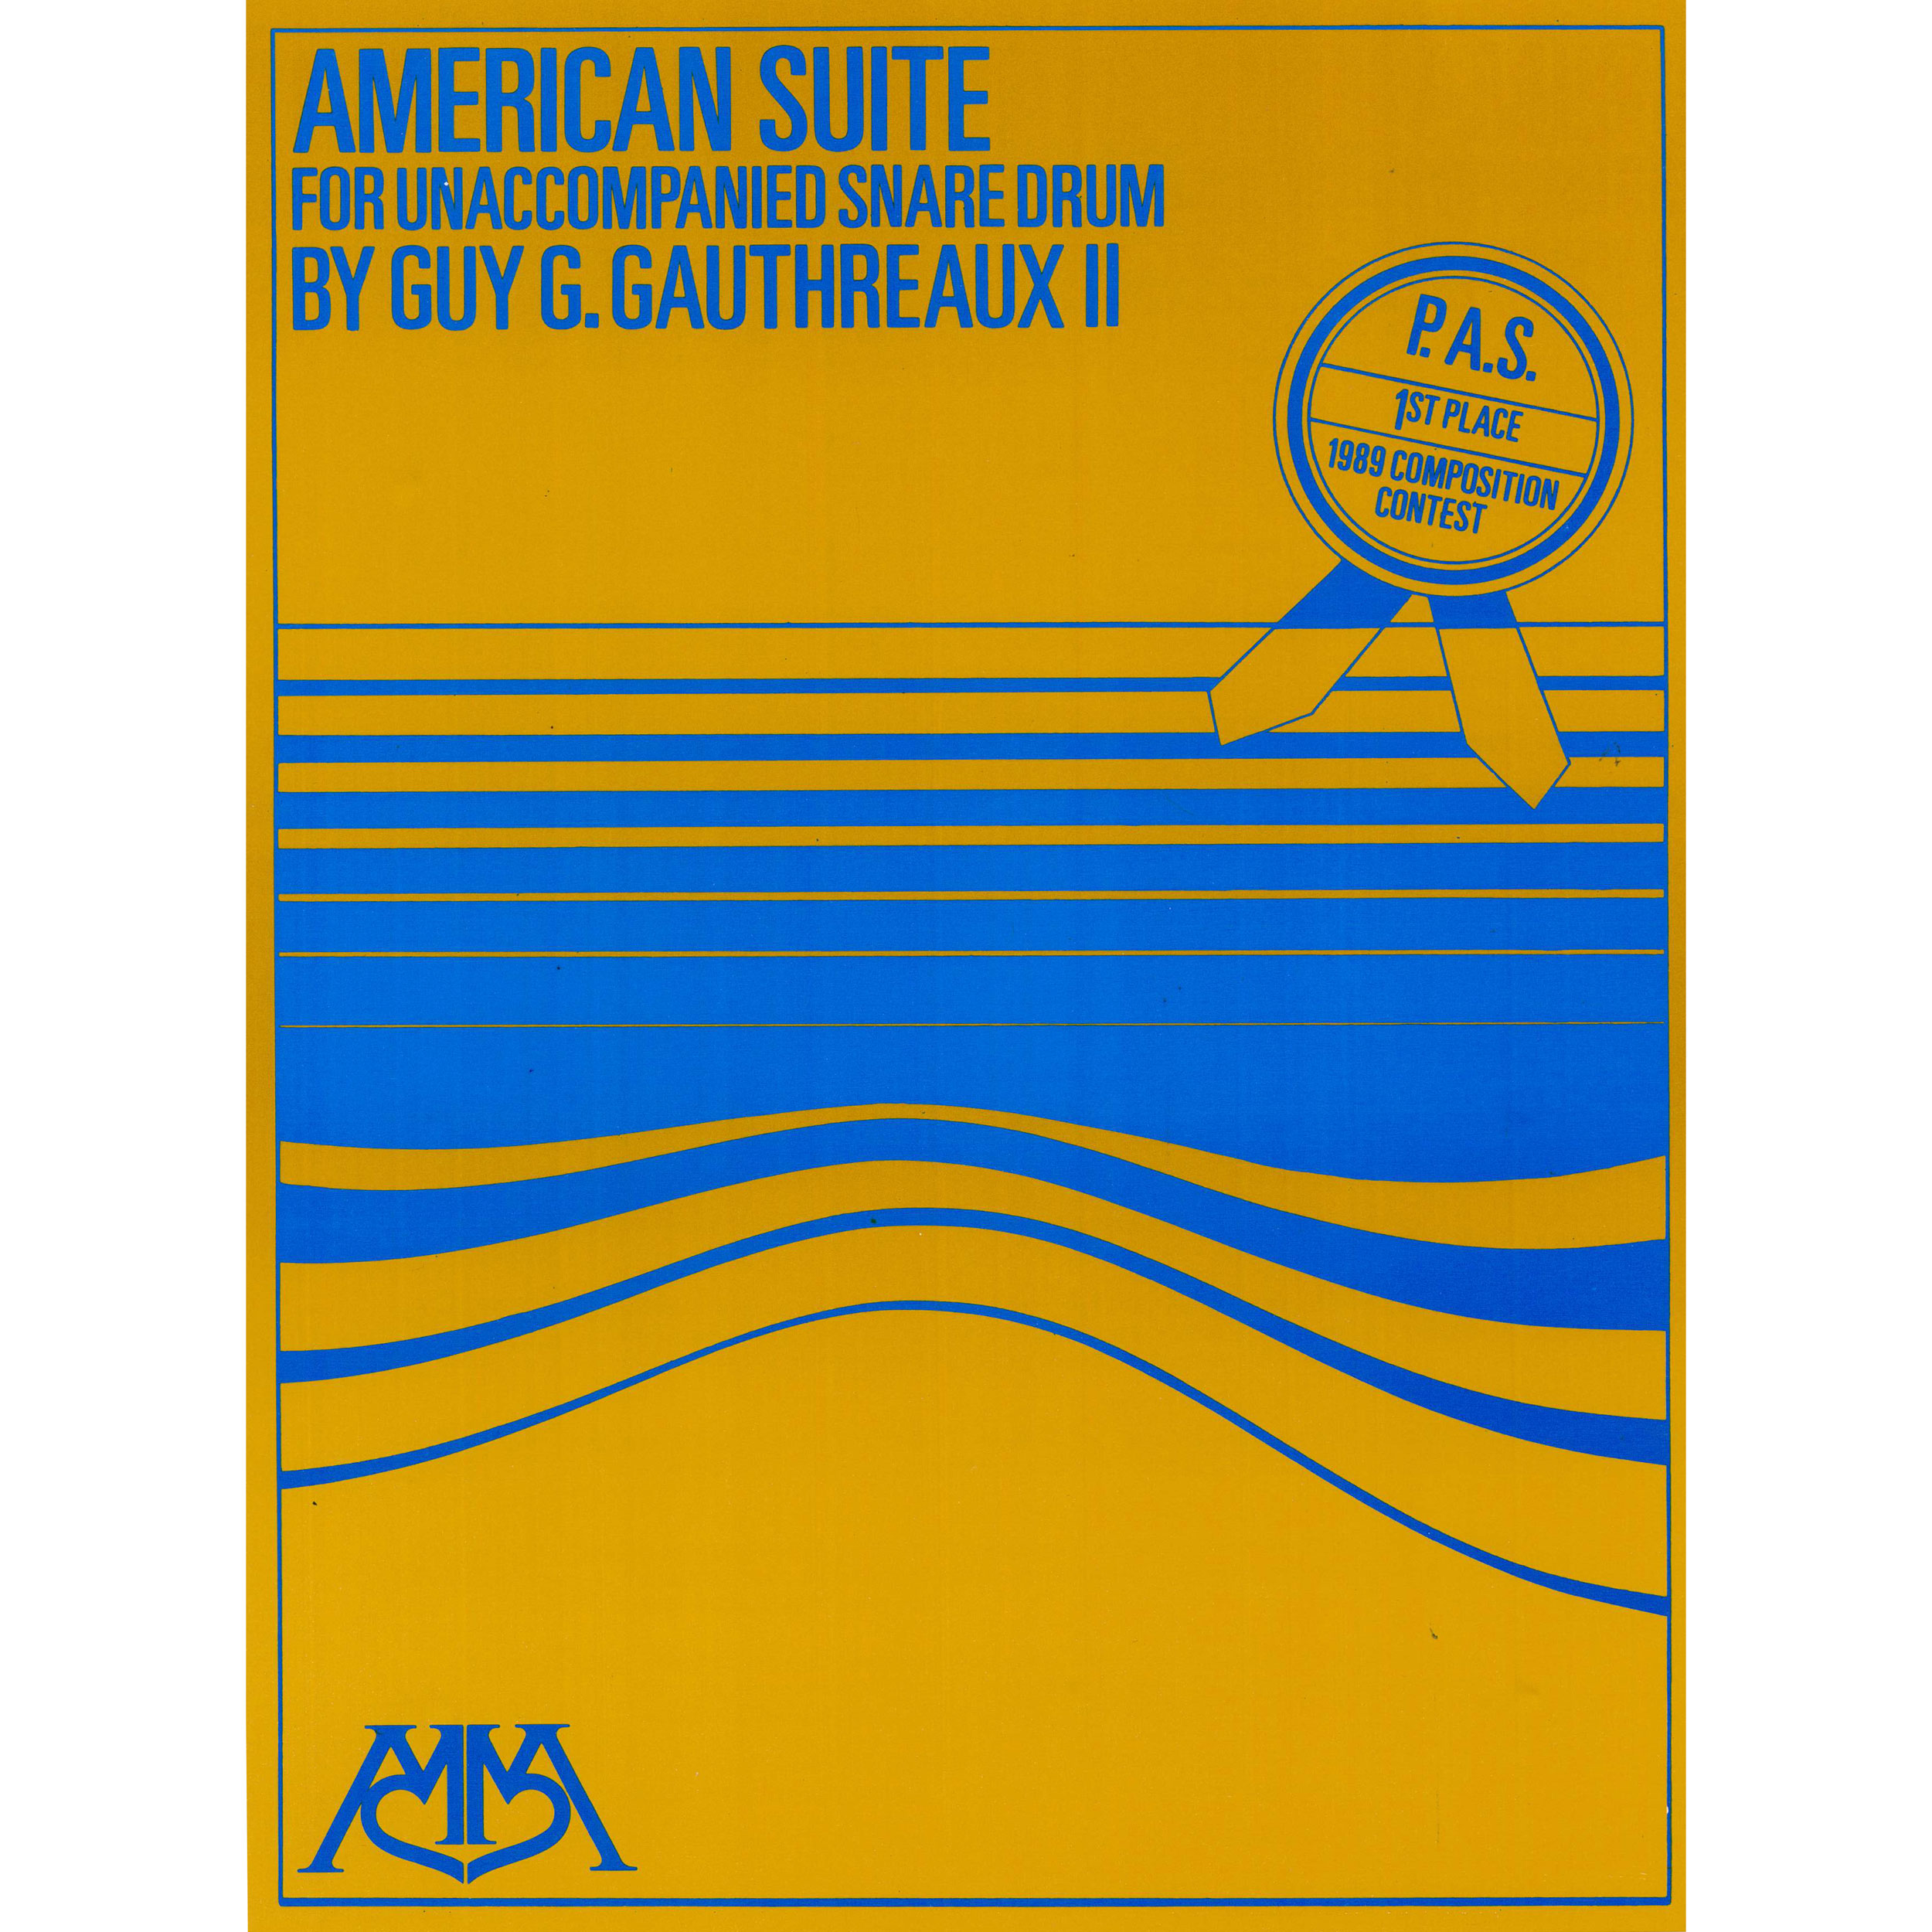 American Suite for Unaccompanied Snare Drum by Guy G. Gauthreaux II